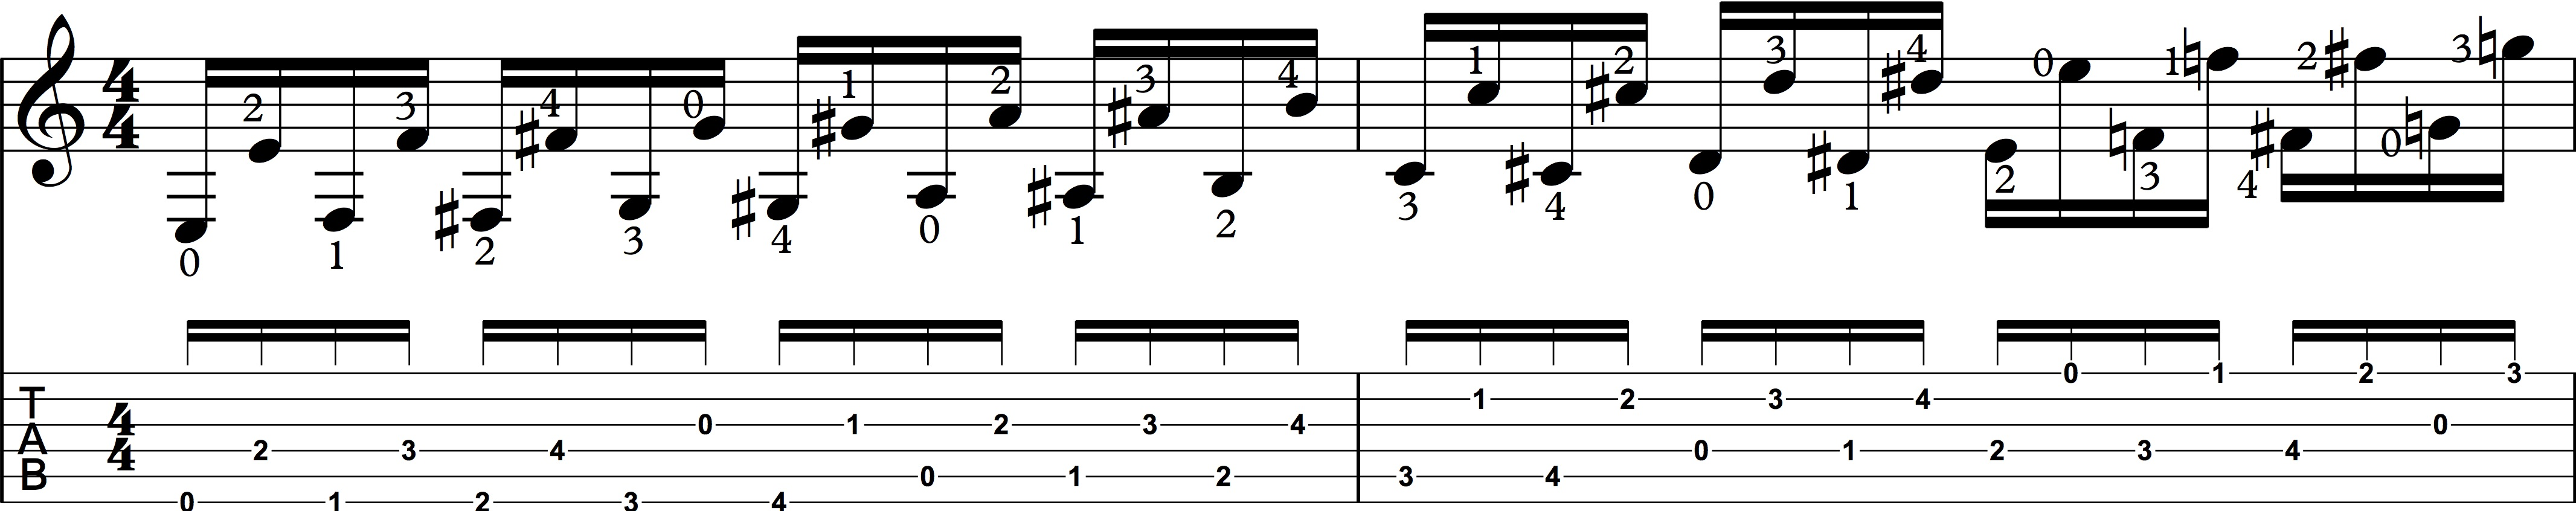 Chromatic Octave 2.jpg